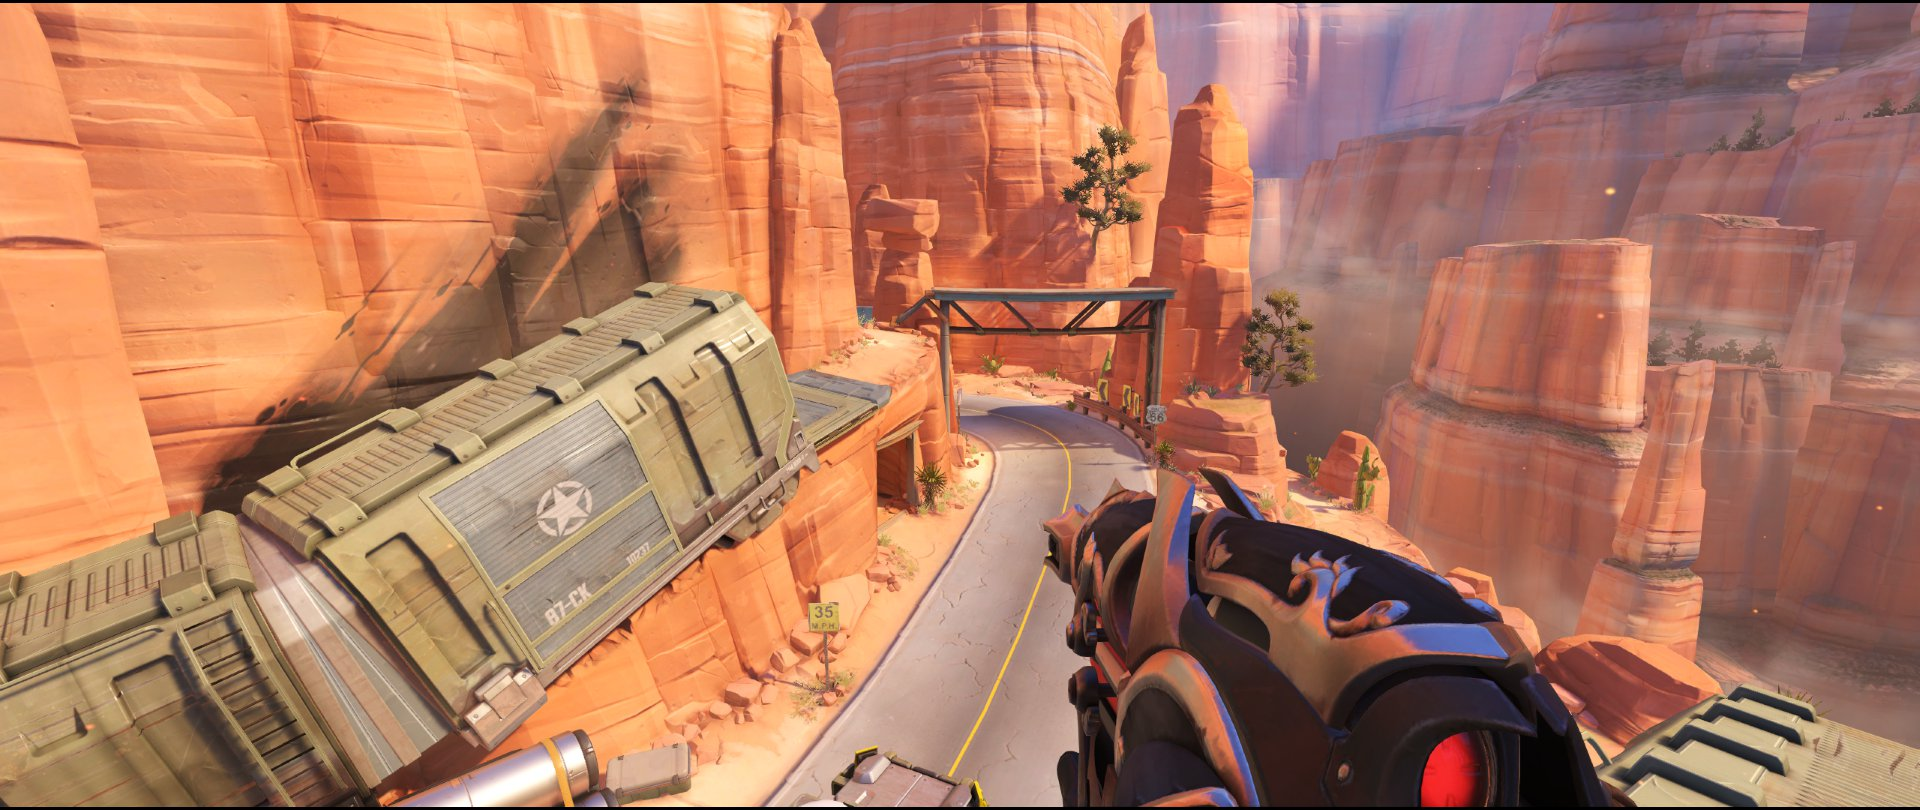 Boxcar attack sniping spot Widowmaker Route 66